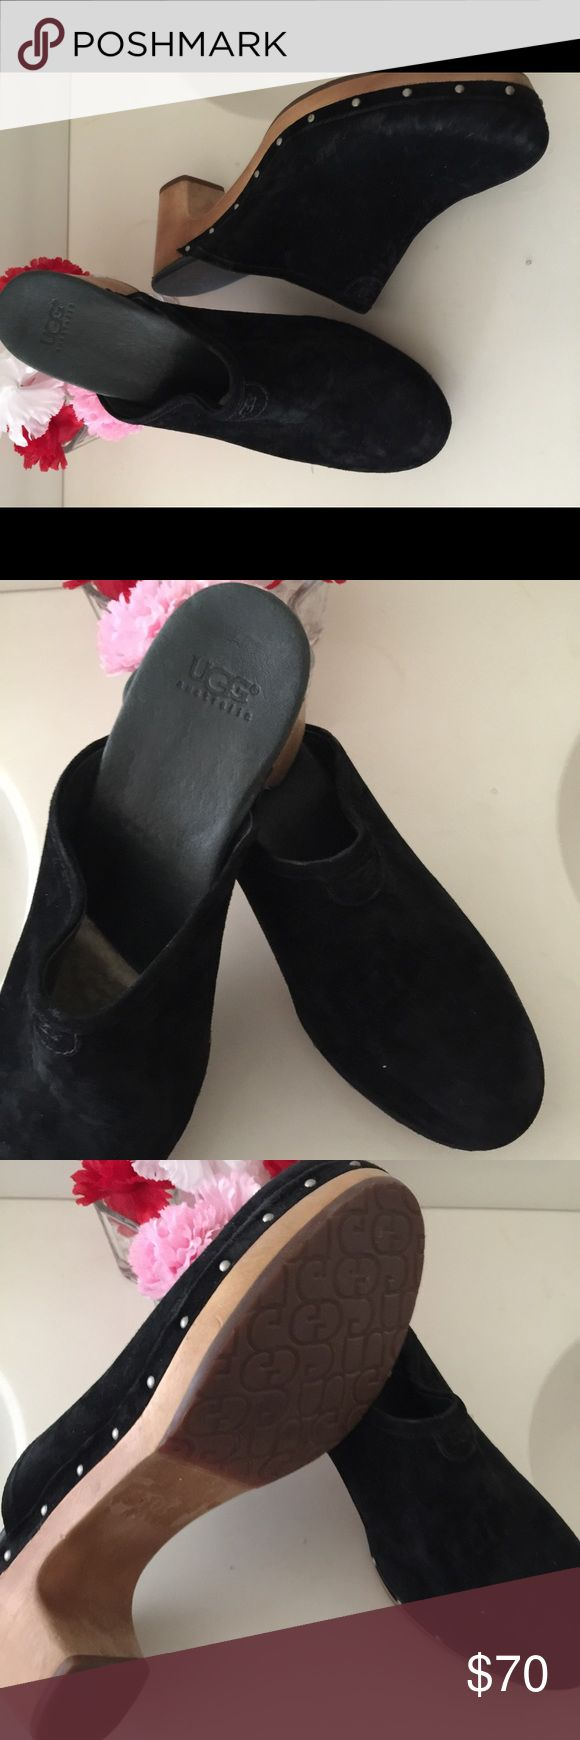 """UGG Clogs Women's 'Kay Suede' from UGG in excellent condition. Vintage style mavens will appreciate this luxe update to the traditional clog. Crafted from rich leather and sitting on a classic bass wood sole, the Kay provides timeless comfort through a cushioning insole and added arch support. In hard to find size:12  Color:Black.   Suede Added arch support PORON® insole Leather and sheepskin insole lining Bass wood midsole Rubber outsole 2 ¾"""" heel UGG Australia Shoes Mules & Clogs"""